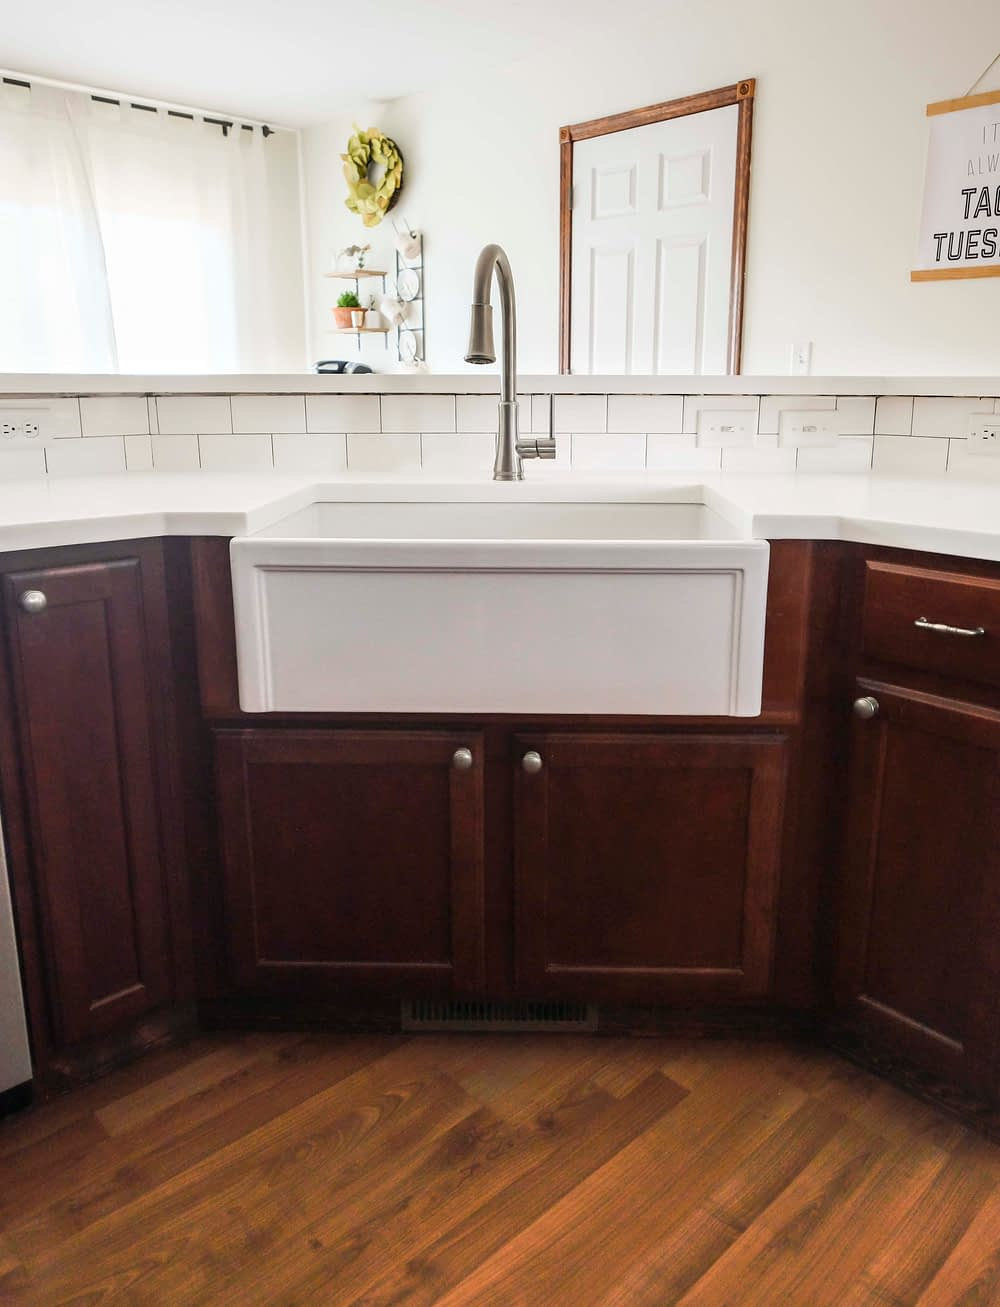 Kitchen with white countertops and wood cabinets with a farmhouse sink